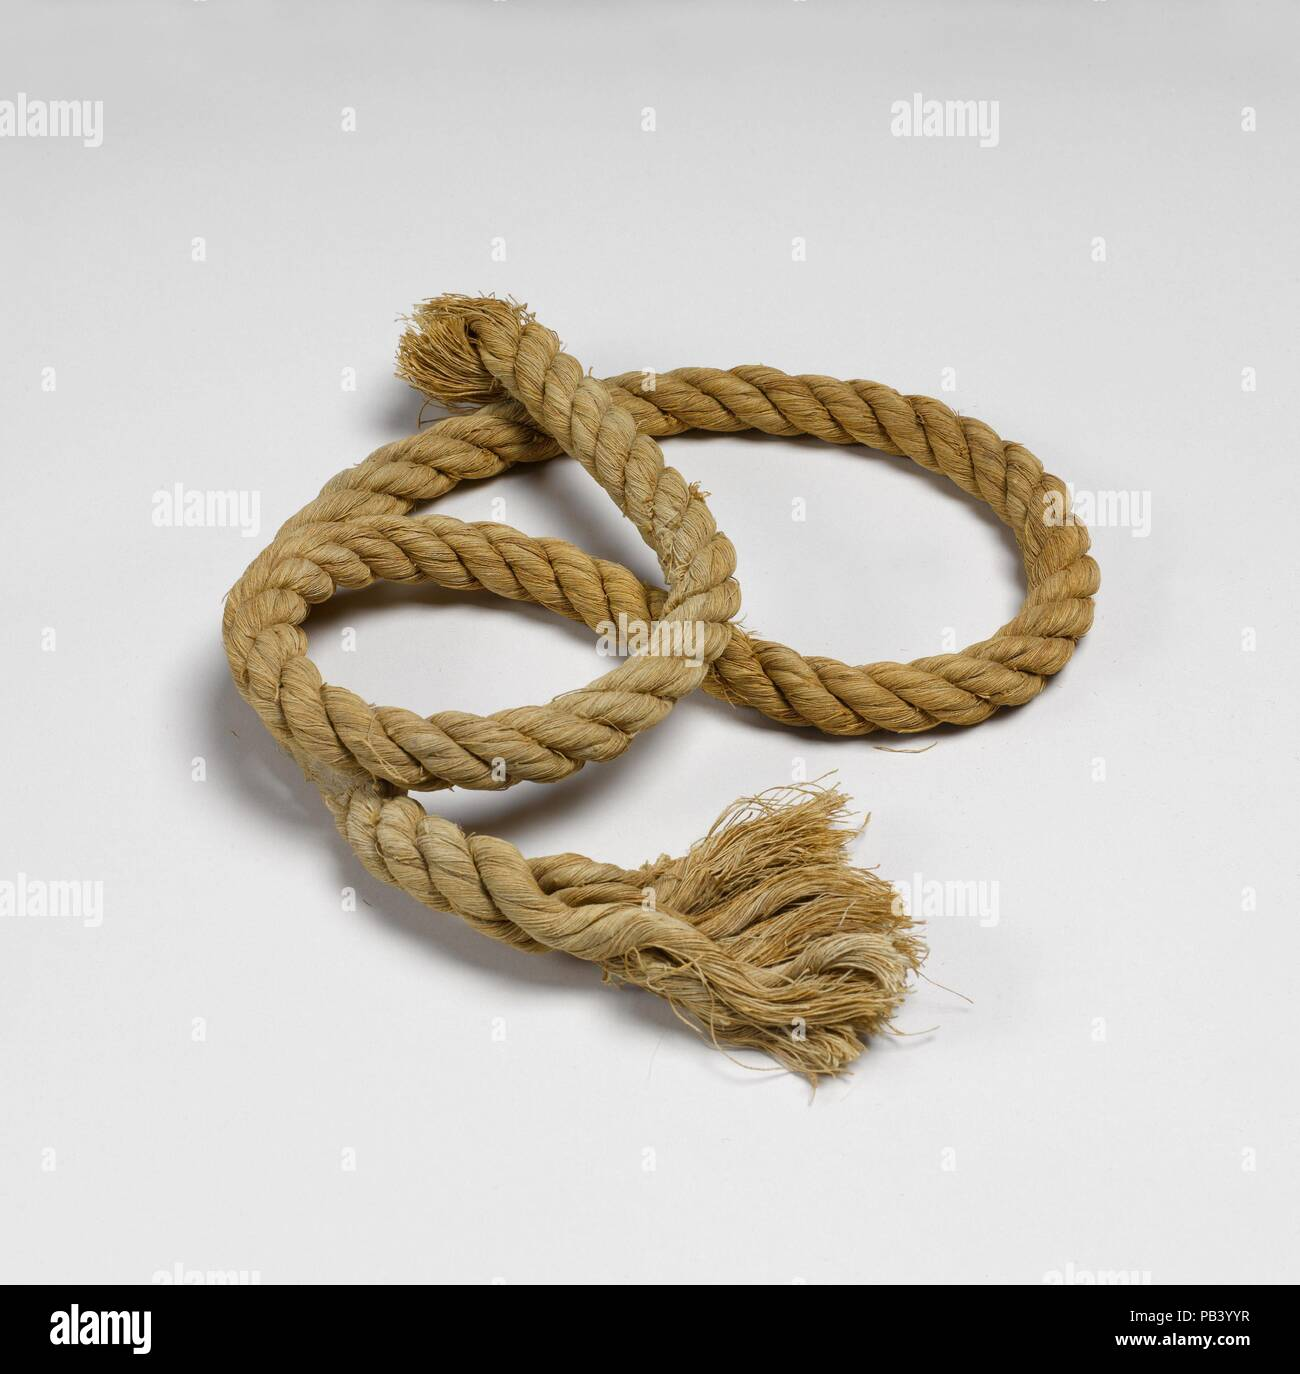 Rope. Dimensions: 119 cm long. Dynasty: Dynasty 11. Reign: reign of Mentuhotep II. Date: ca. 2030-1640 B.C.. Museum: Metropolitan Museum of Art, New York, USA. - Stock Image